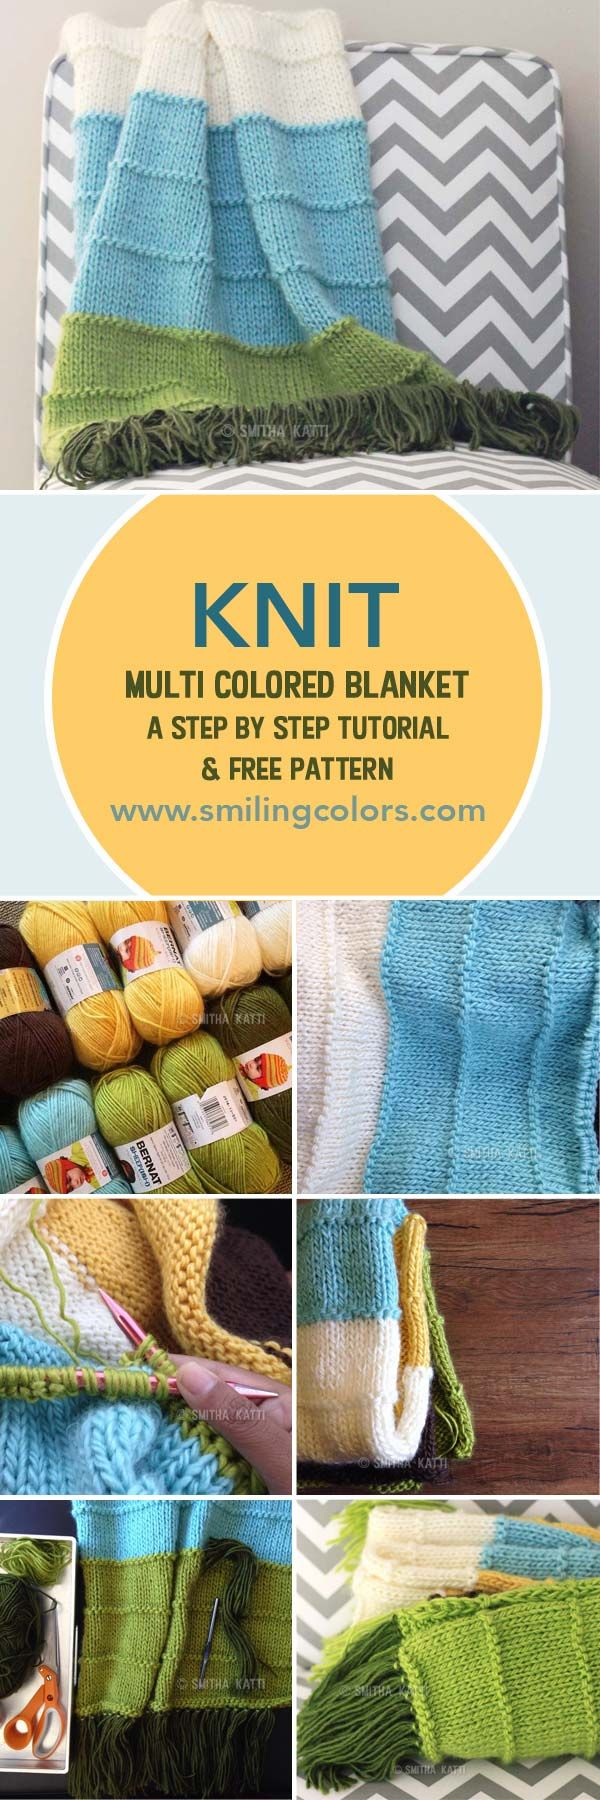 Knit multi colored blanket. Free pattern and photo tutorial, www ...